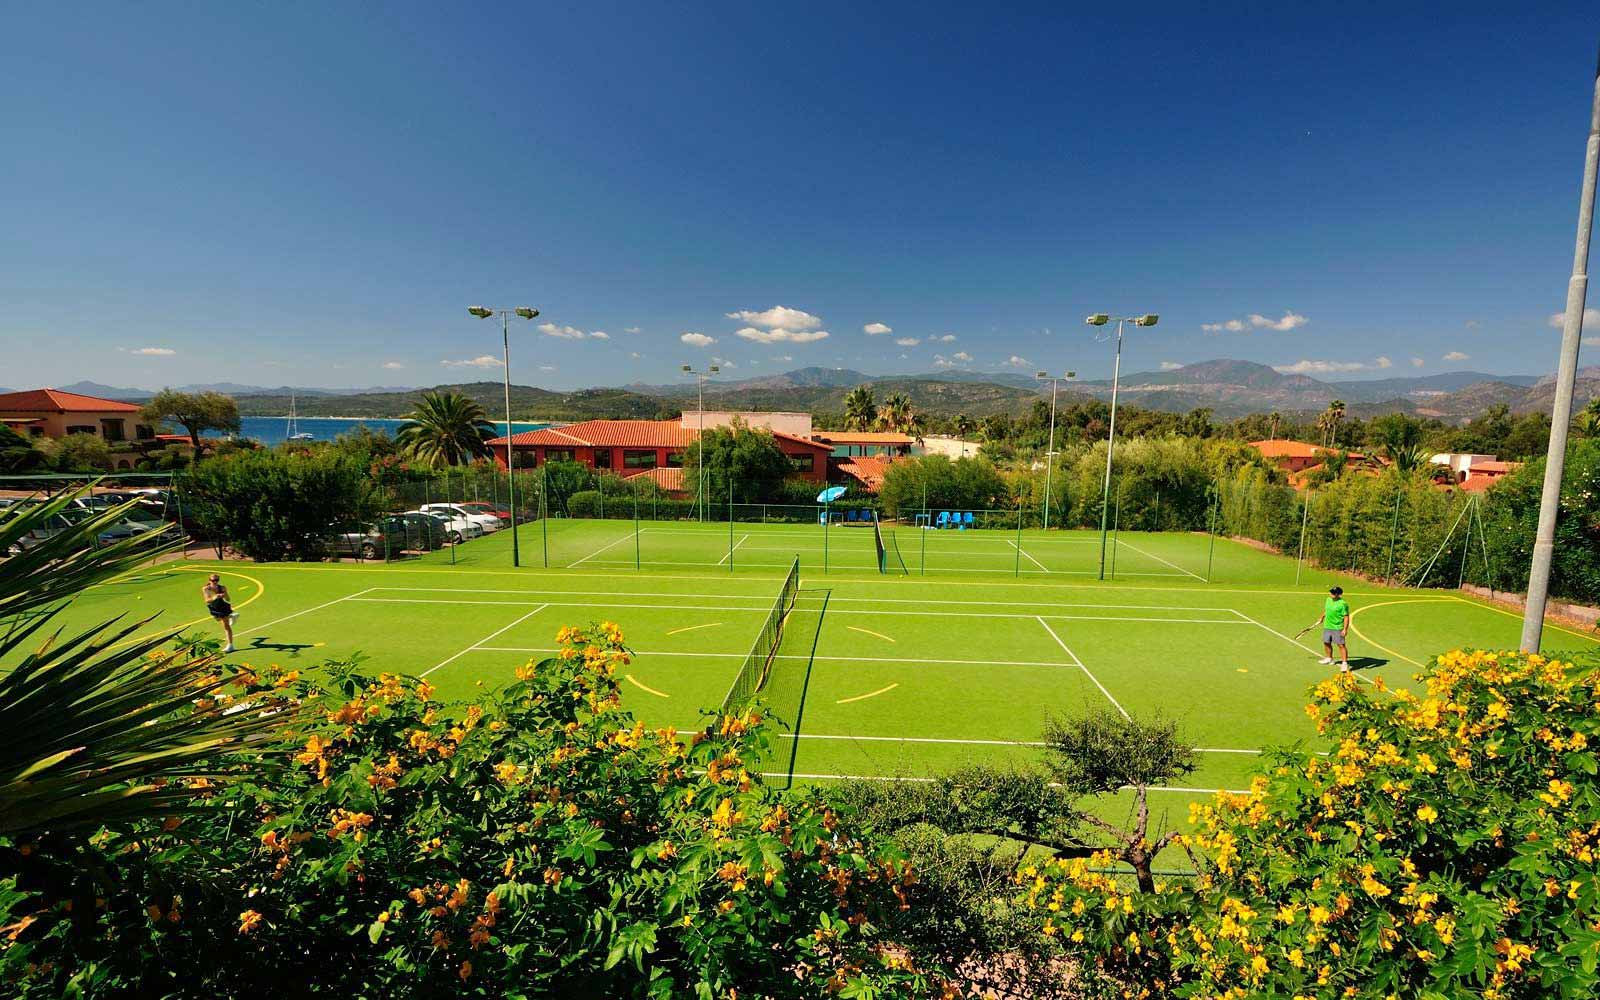 Tennis courts at Hotel Club Saraceno